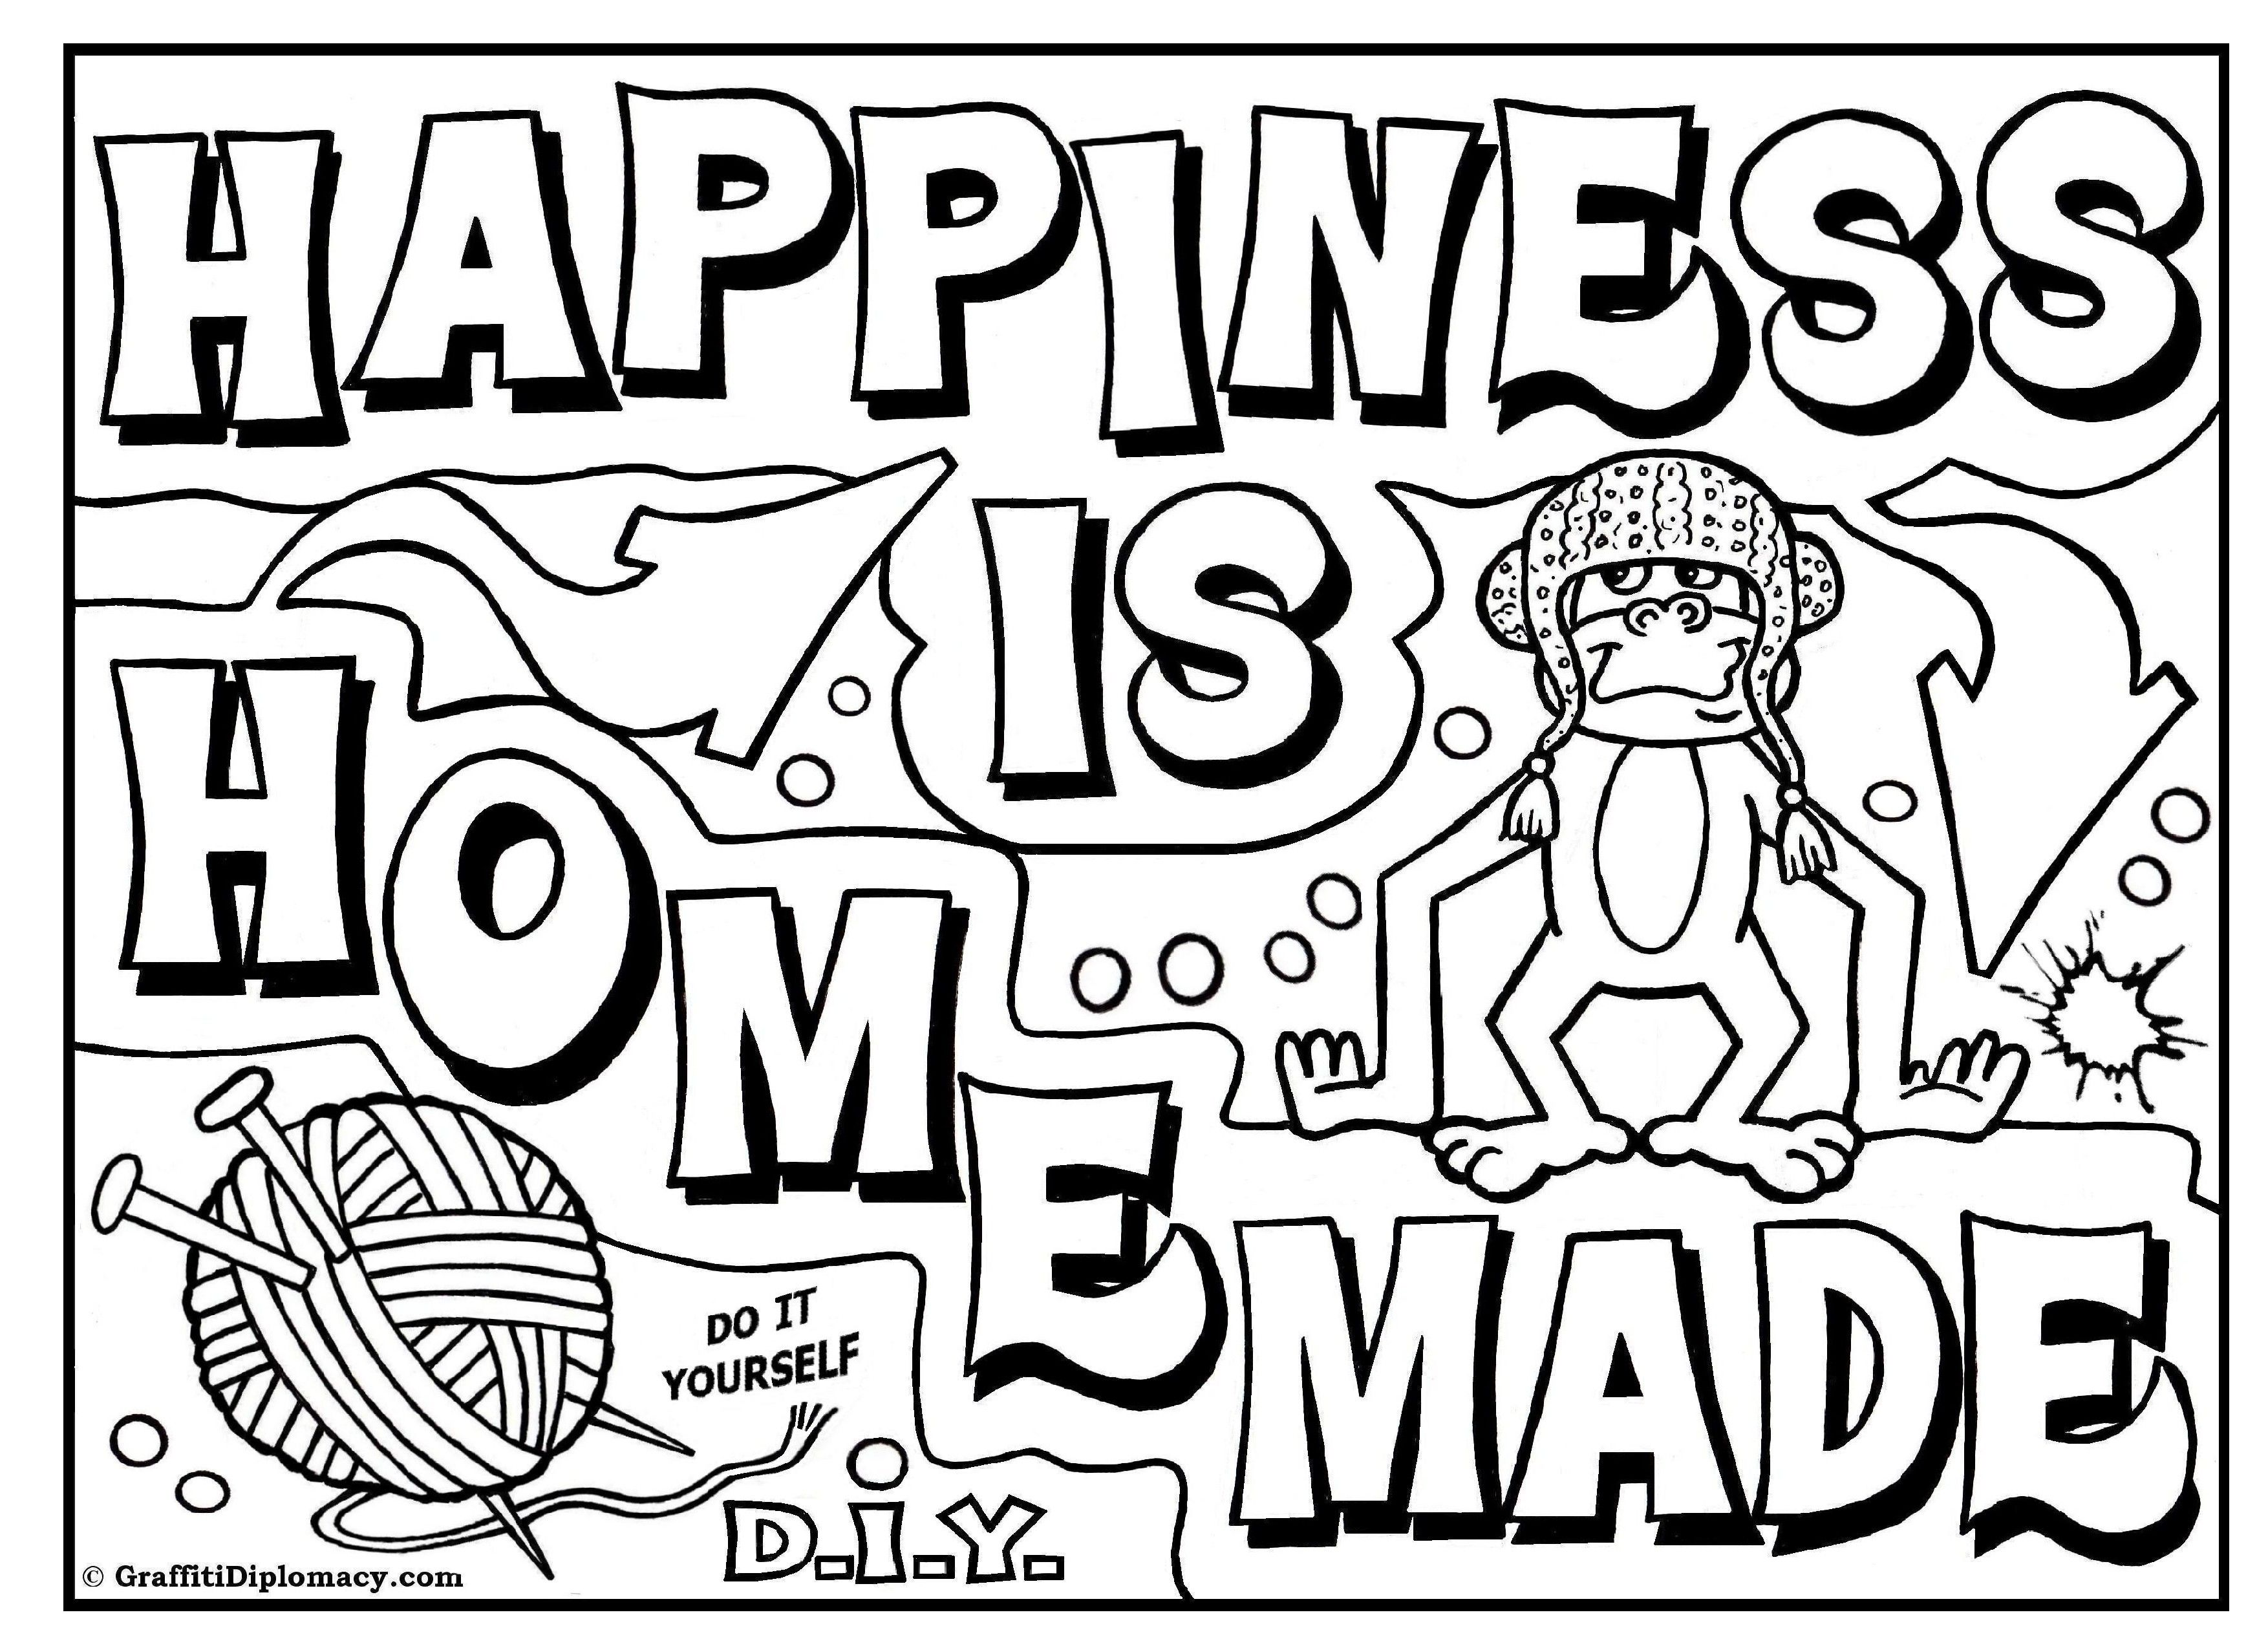 Free Coloring Page D I Y Graffiti Happiness Is Homemade Free Printable Coloring Pages Cool Designs To Draw Coloring Books [ 2552 x 3508 Pixel ]